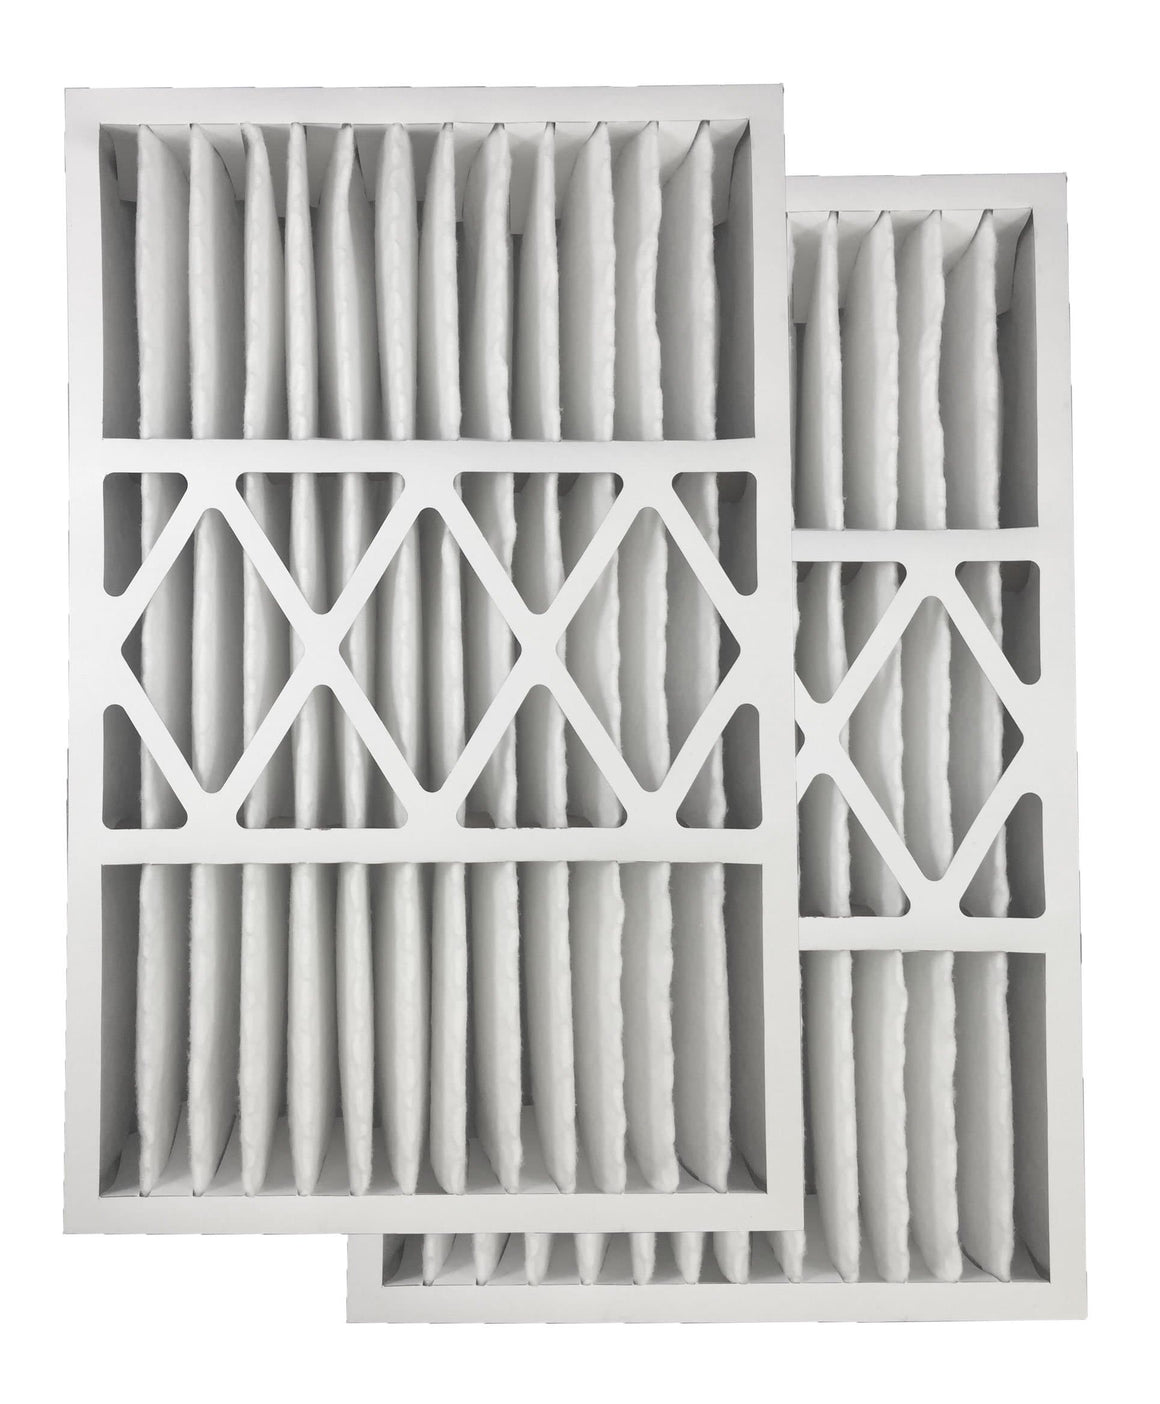 Atomic FC200E1003 16x20x5 Honeywell Replacement MERV 13 Furnace Filter - 2 Pack